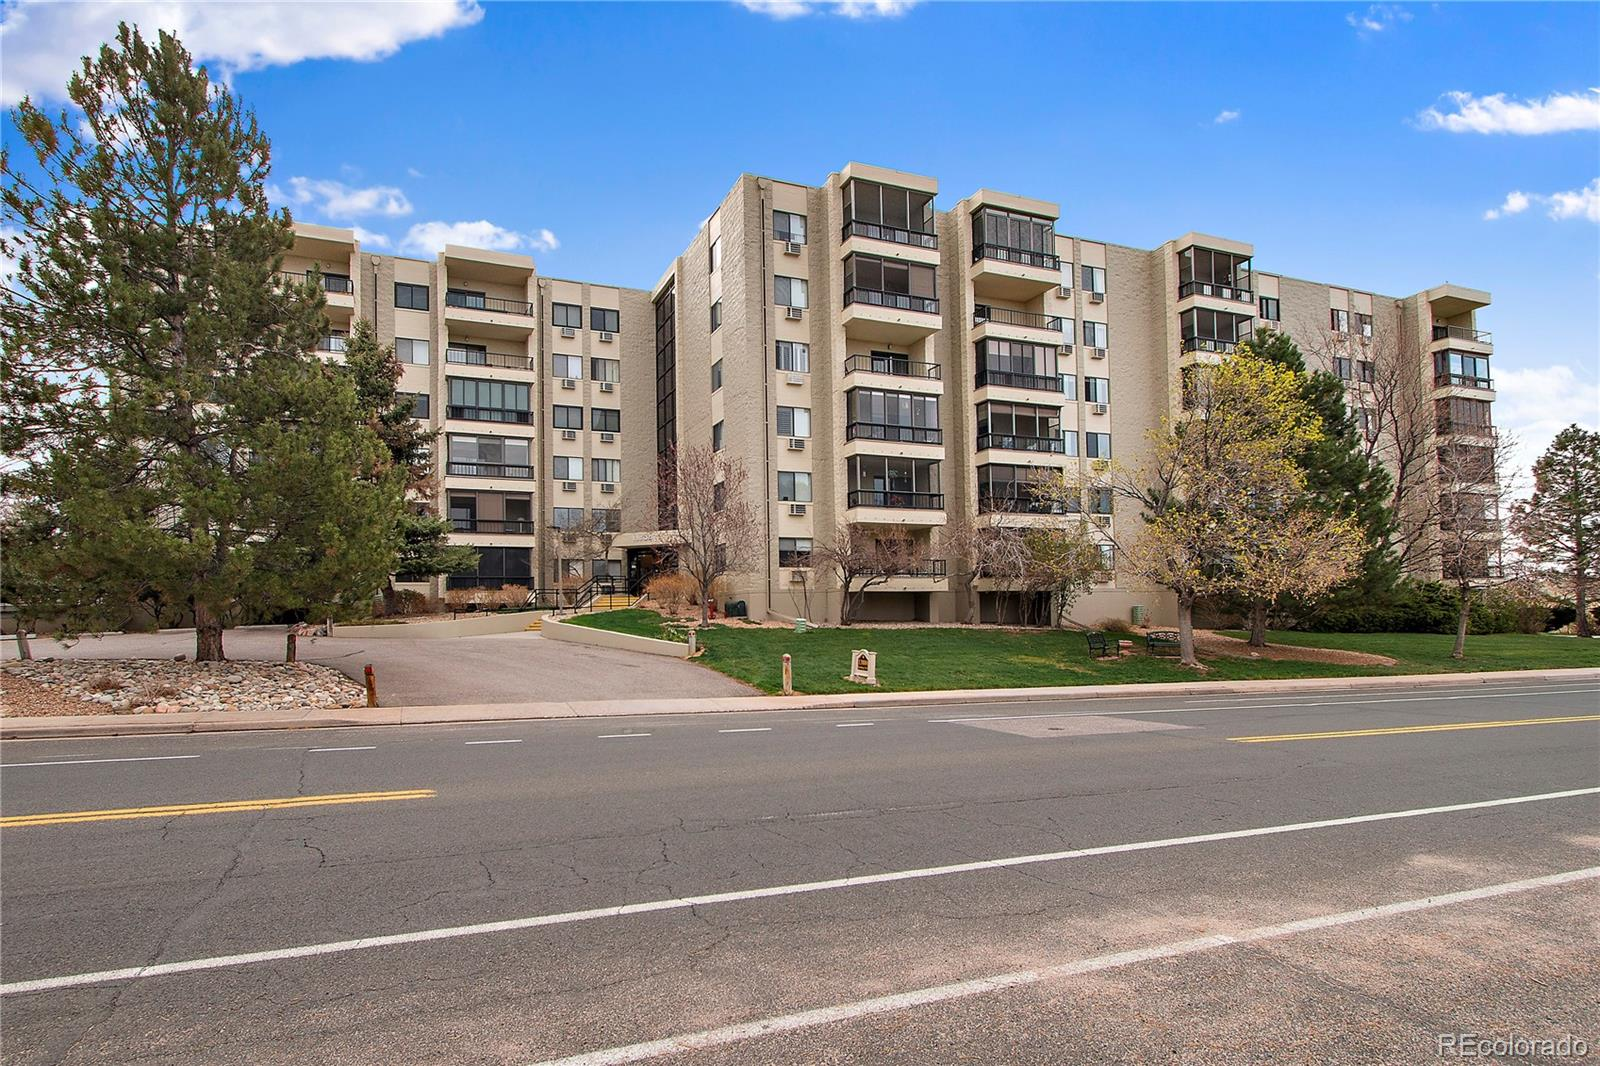 Brand New to the market! Spacious 2 bedroom and 1 bathroom unit on the 3rd floor. Featuring an enclosed patio, good sized master bedroom with large closet, an updated kitchen and great natural light that passes through the entire unit. Comes with a reserved parking spot right next to the Elevator in the underground garage.Heather Gardens is Close to Light Rail and Cherry Creek State park.Community has an awesome Clubhouse with amenities that include: golf course, tennis courts, Indoor and Outdoor pools, fitness center and many other activities, this 55+ active adult community the home is Move in ready!